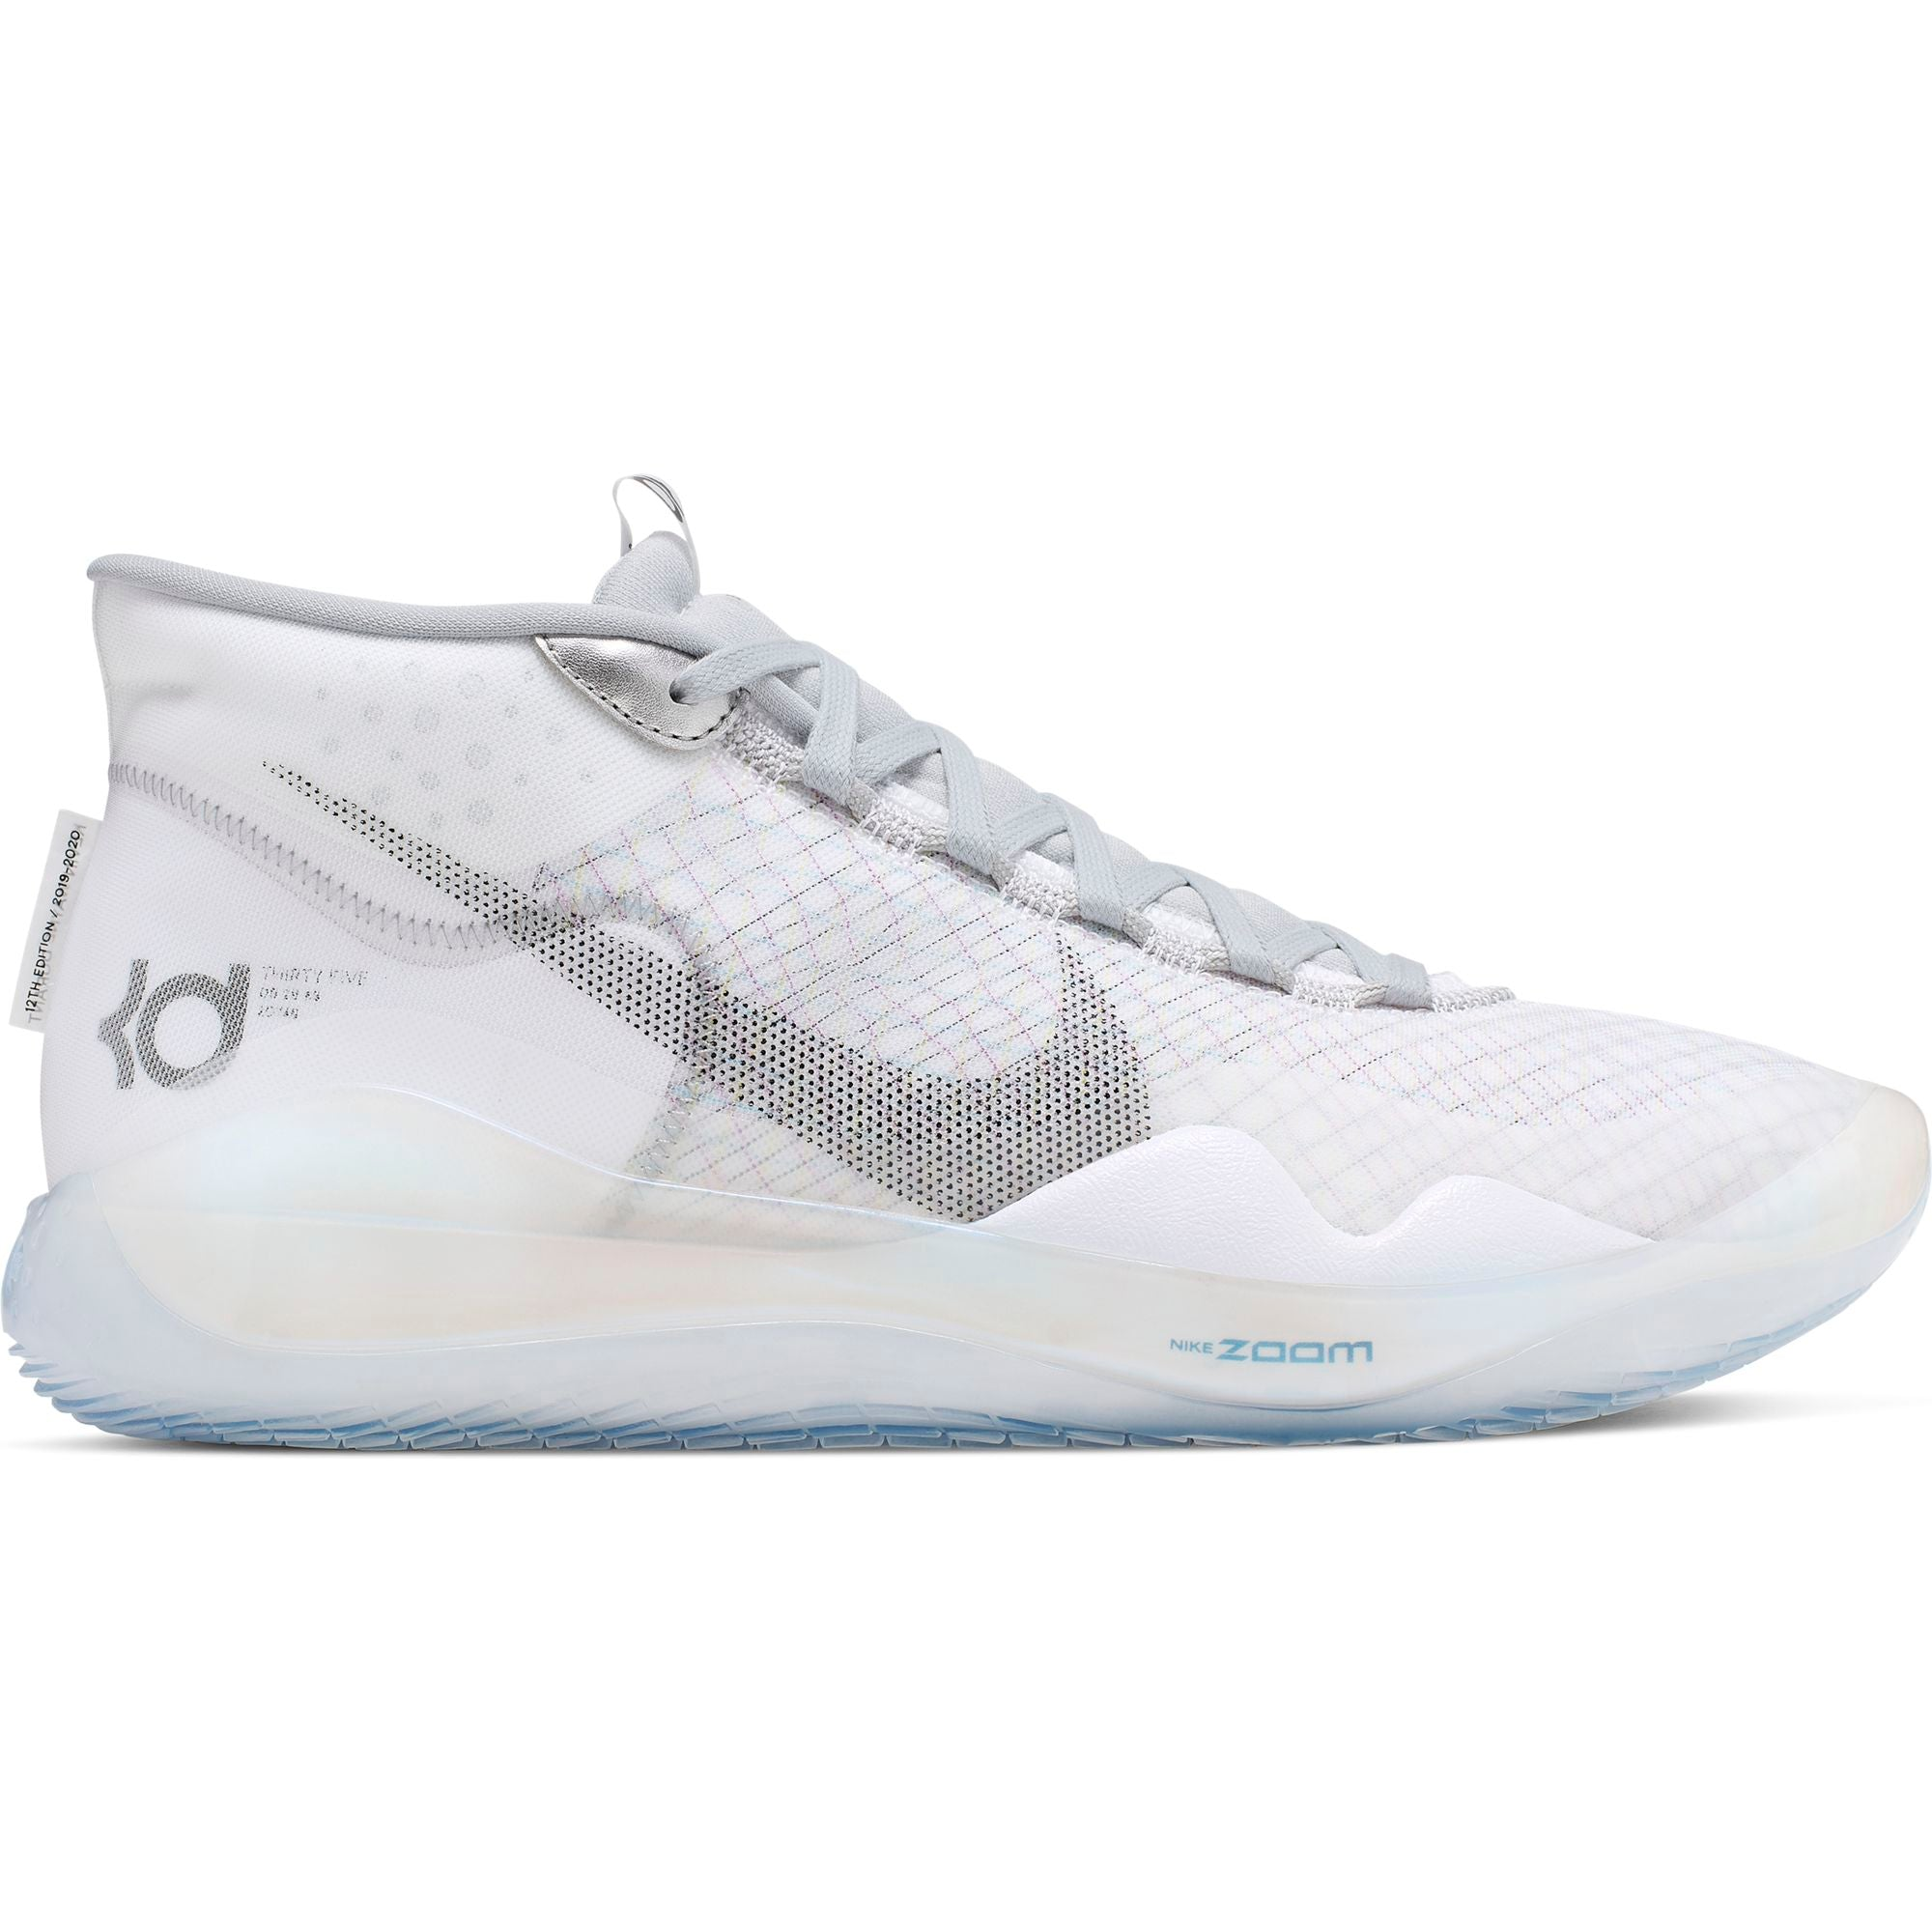 Nike KD Zoom KD12 Basketball Boot/Shoe - White/Black/Wolf Grey